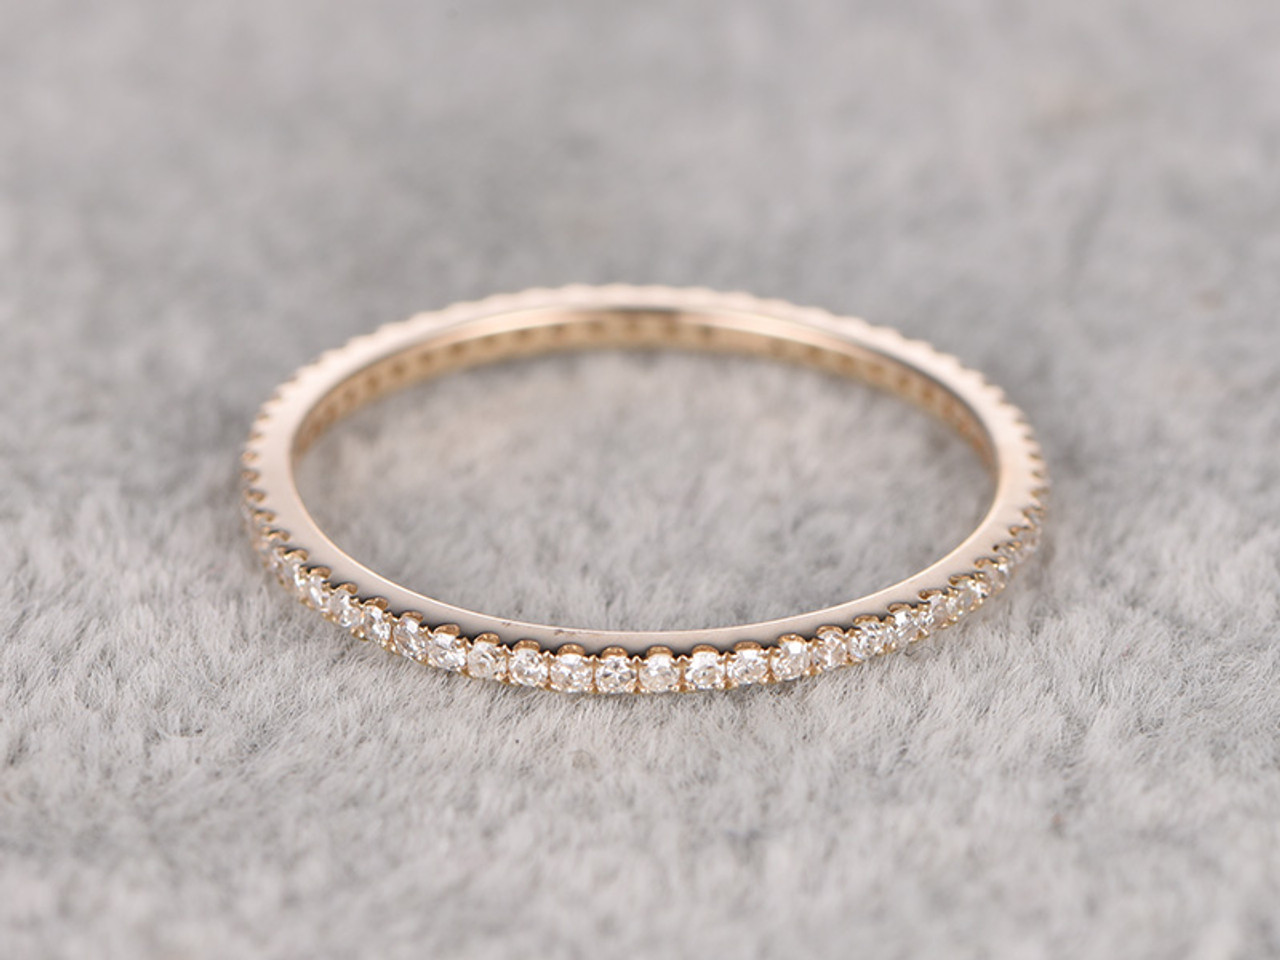 bands eternity annivery her checkout calculated band for wedding pave full yellow rings thin sku diamond gold ring at shipping